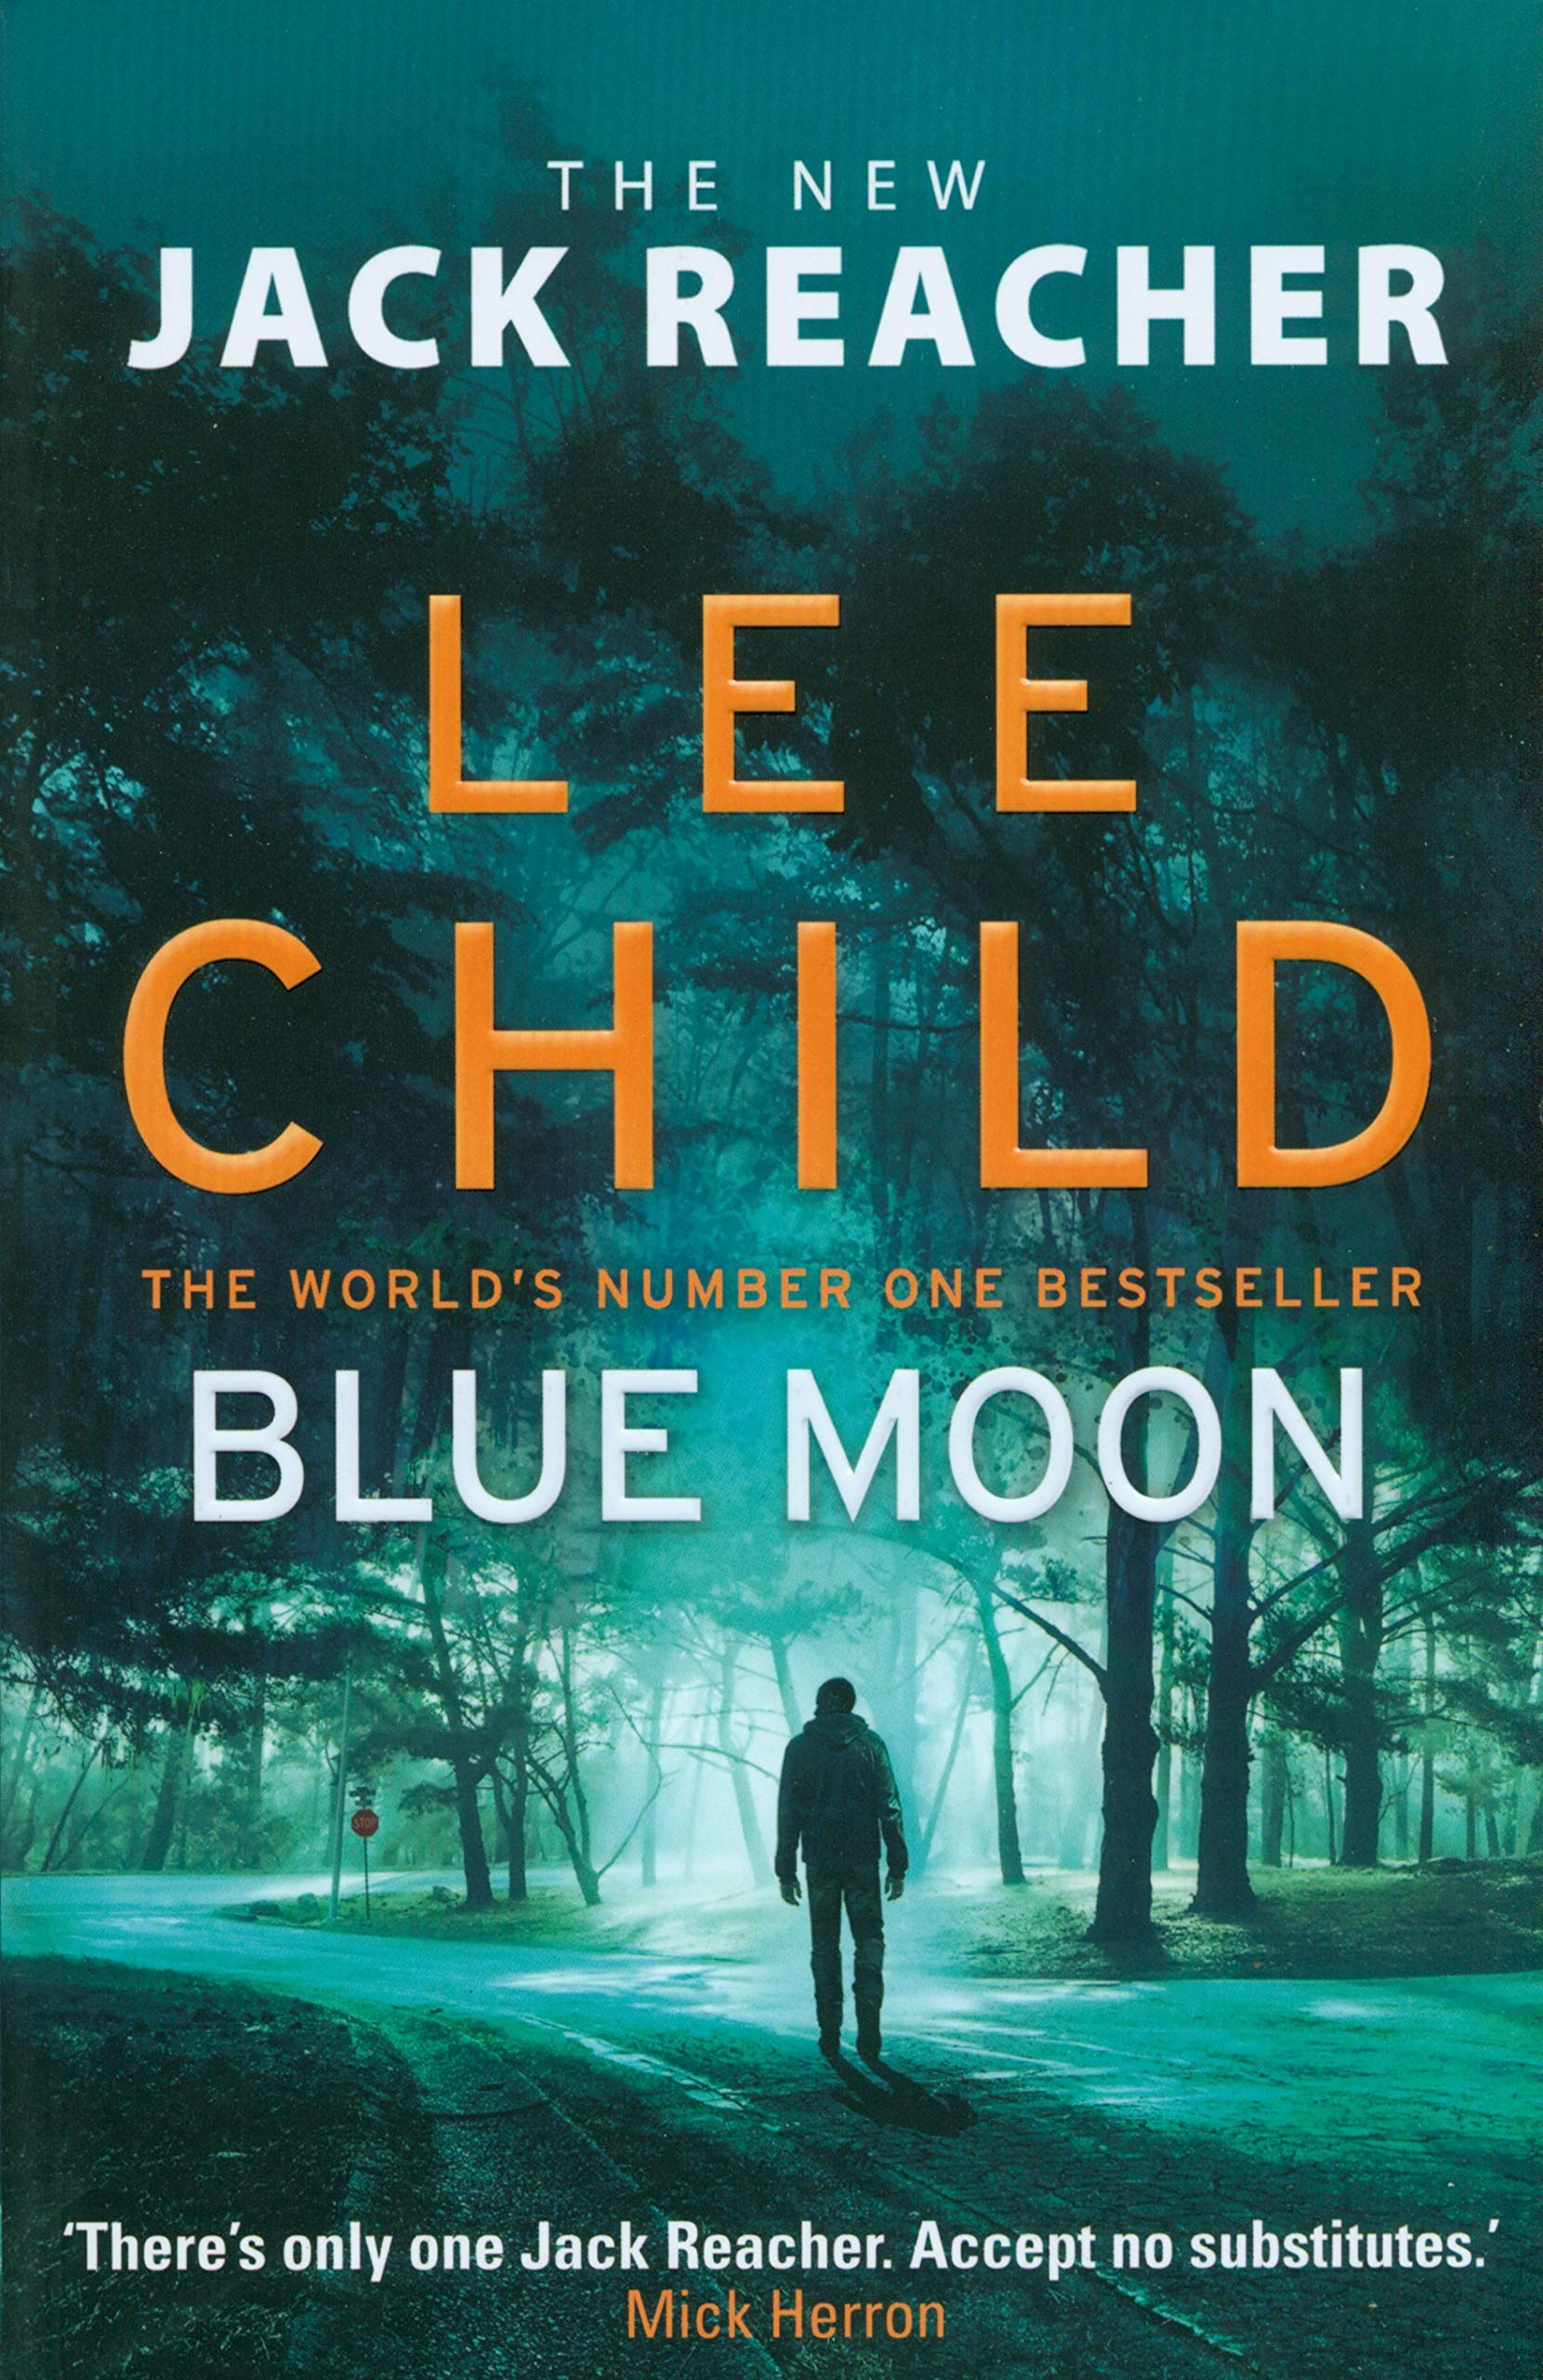 Blue Moon (Jack Reacher)